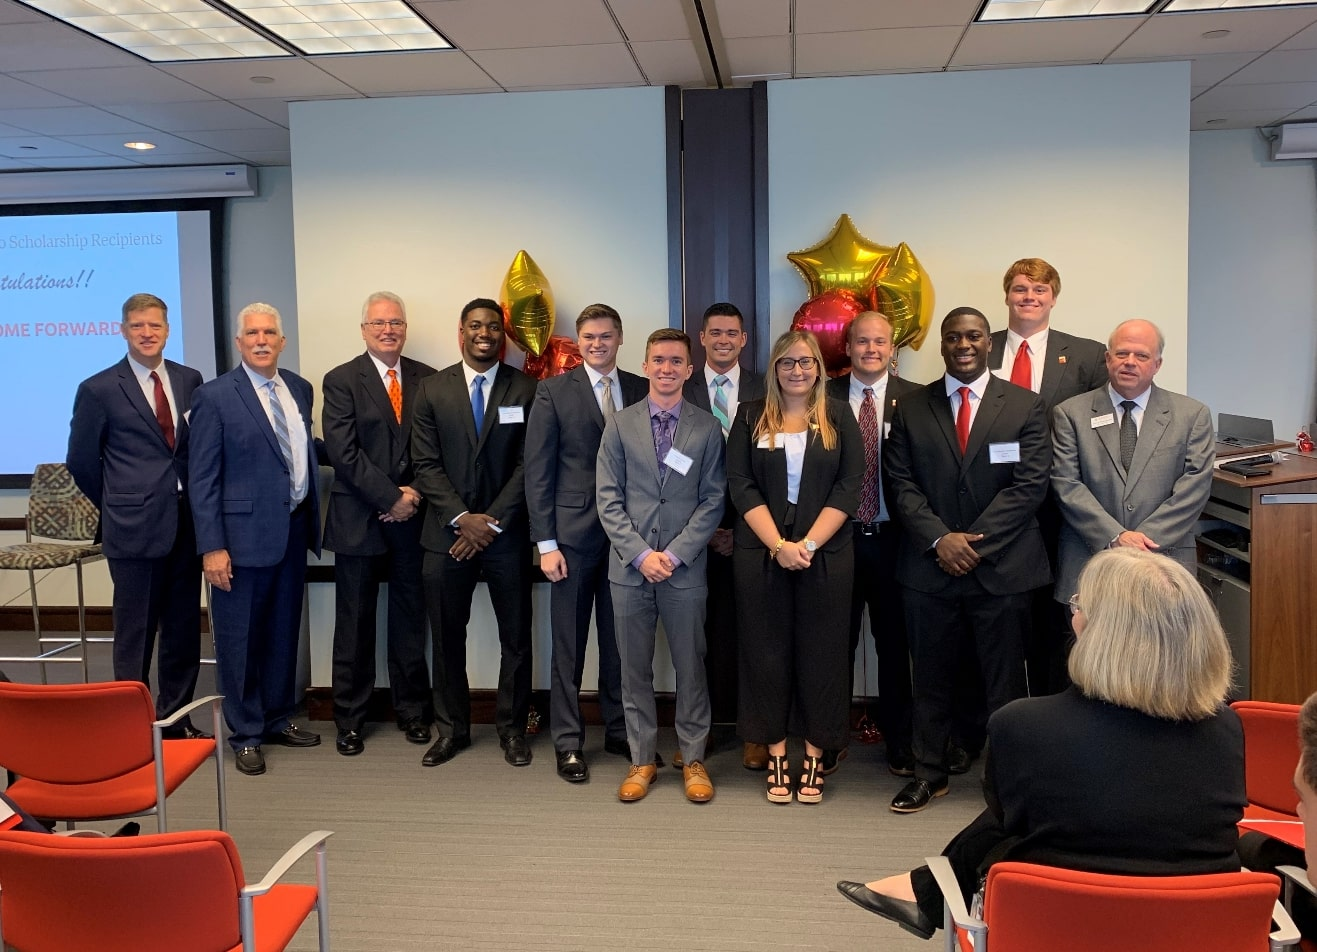 Wells Fargo expands scholarship fund for trust majors with